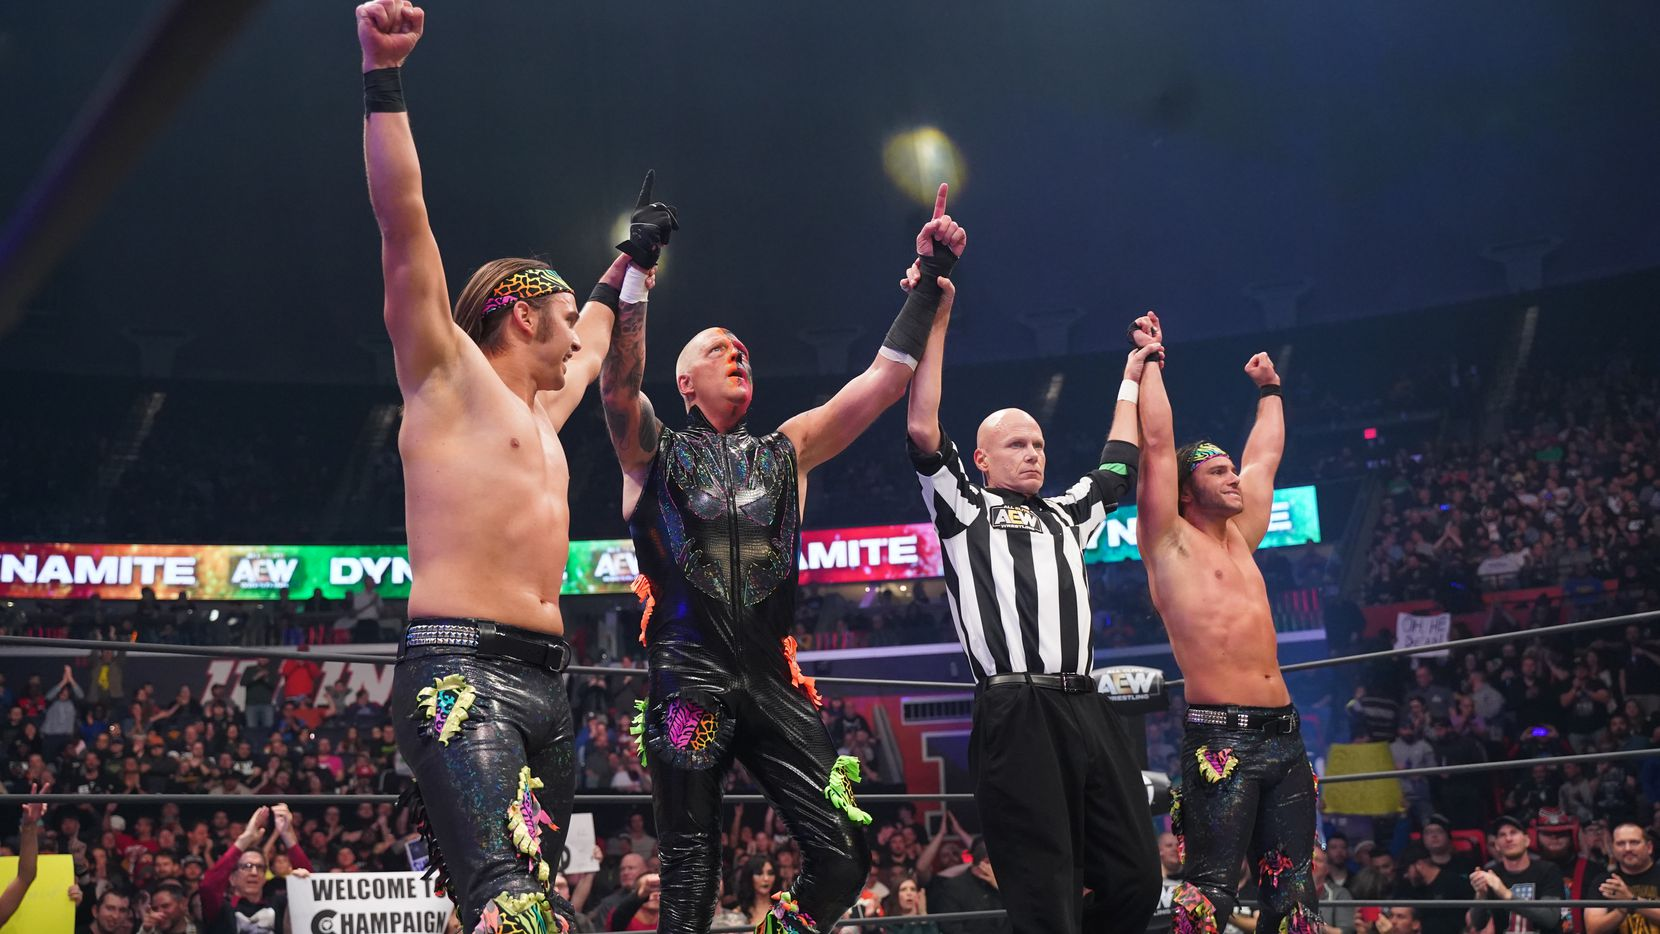 Dustin Rhodes celebrates with the Young Bucks after a victory on AEW Dynamite.